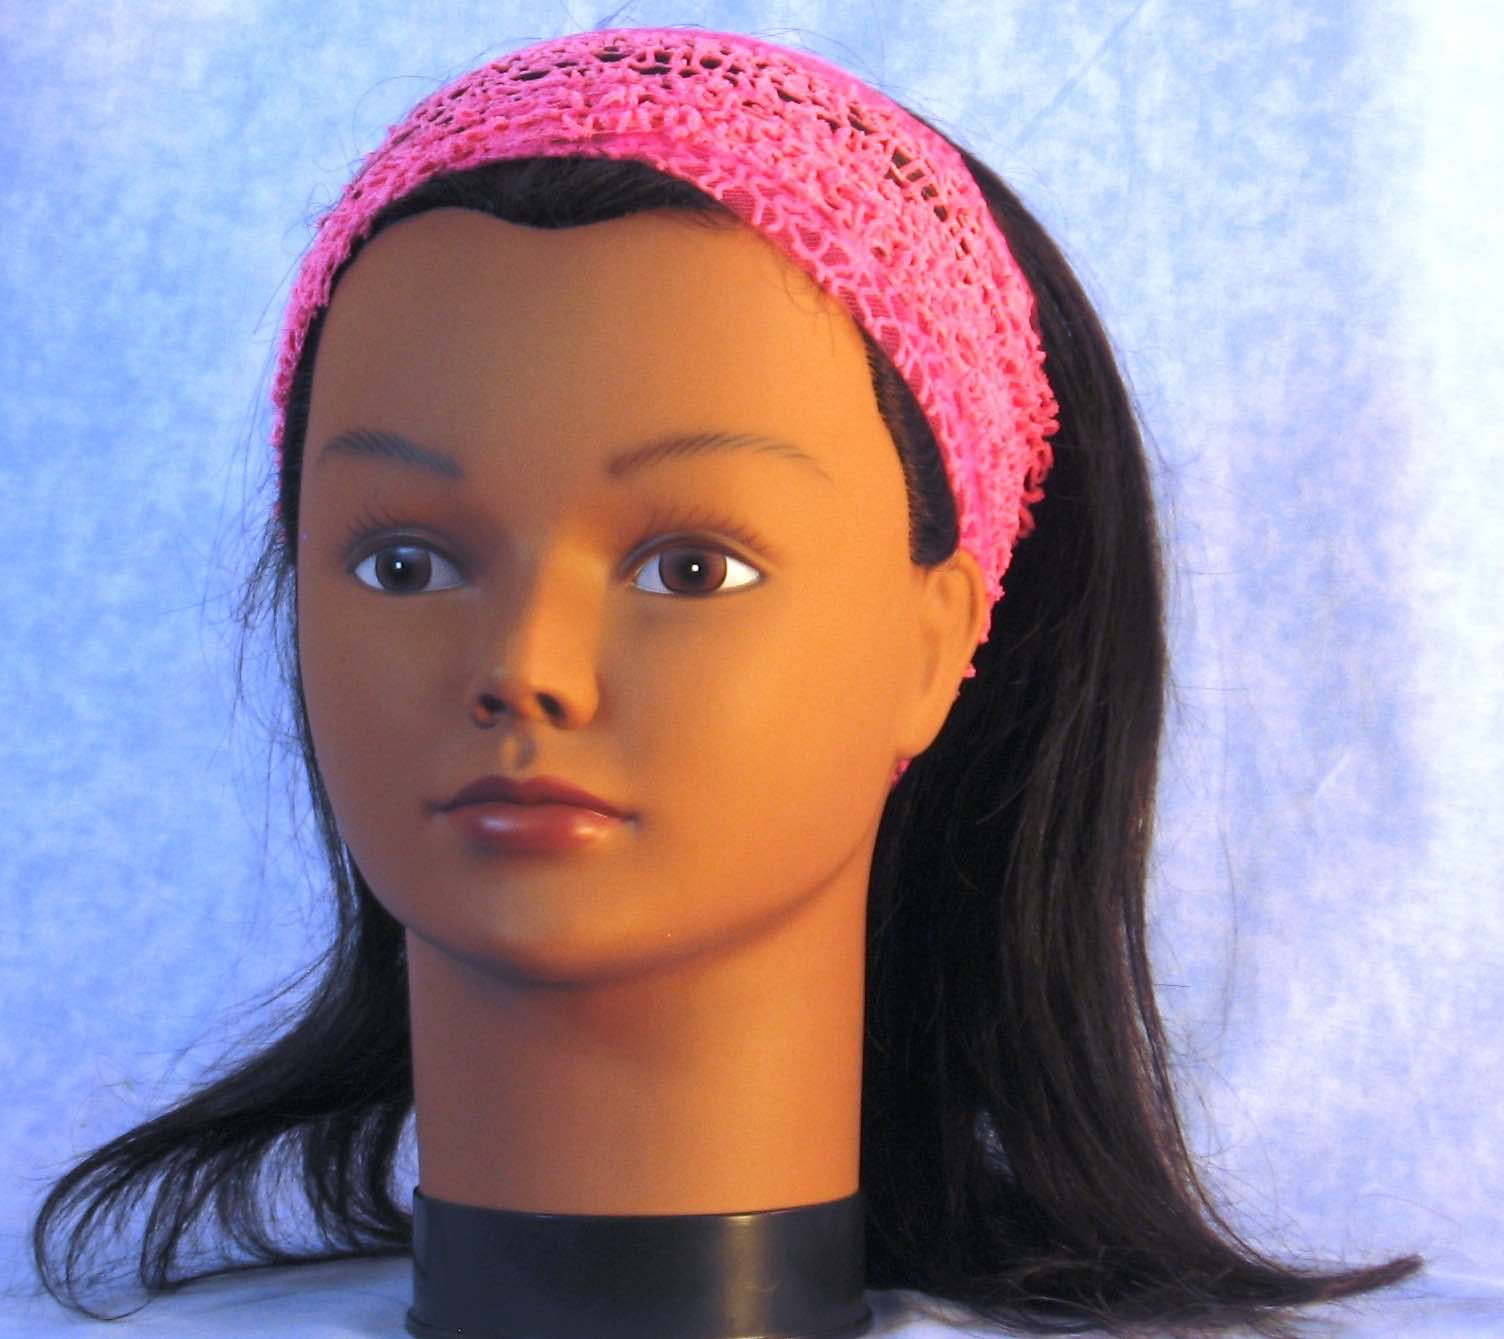 Headband-Pink Mesh Net-Adult M